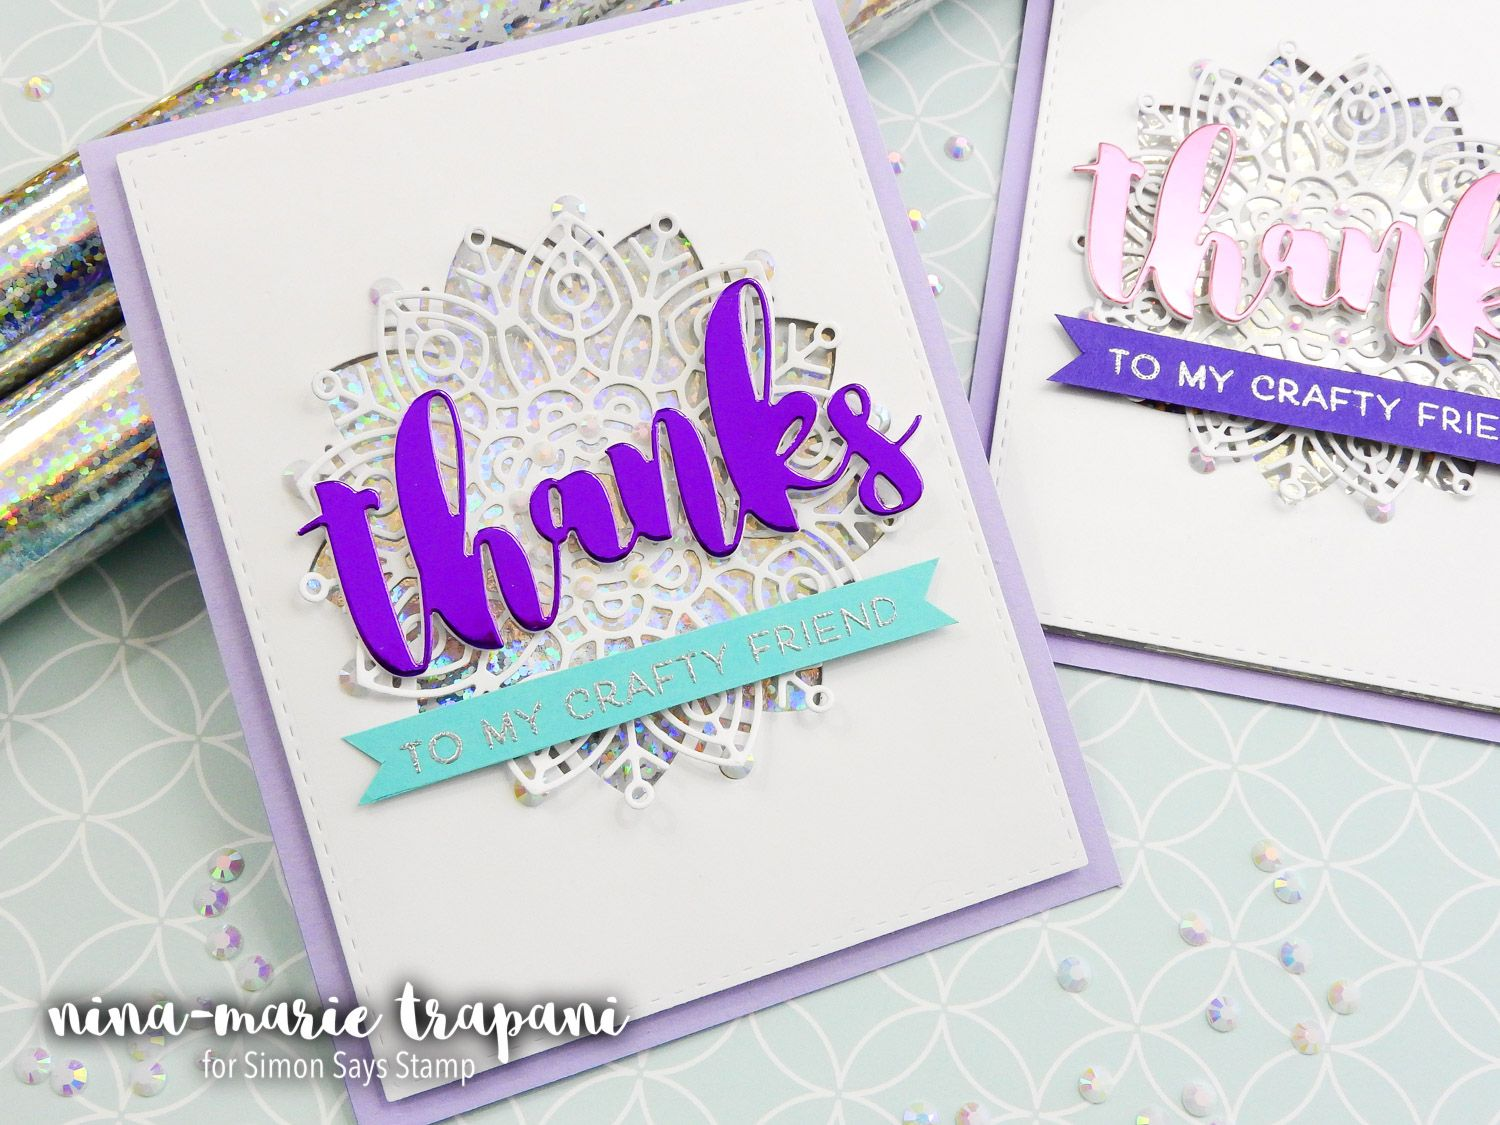 Studio Monday With Nina Marie Re Using Gift Wrap For Cards Simon